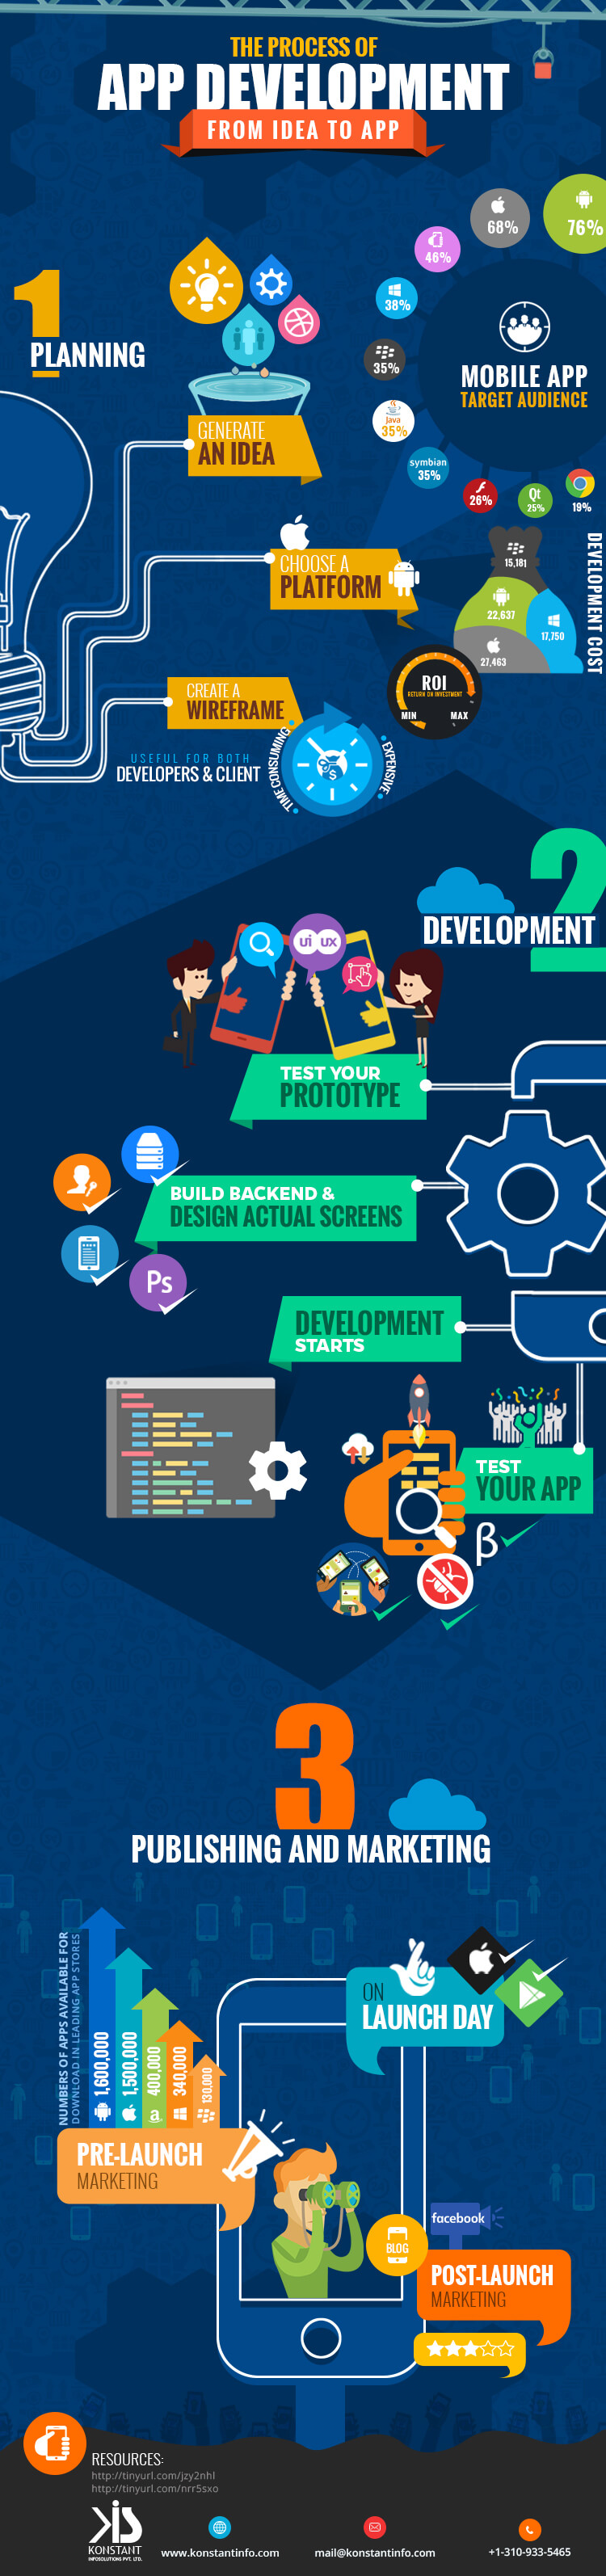 The Process of App Development - From Idea to App